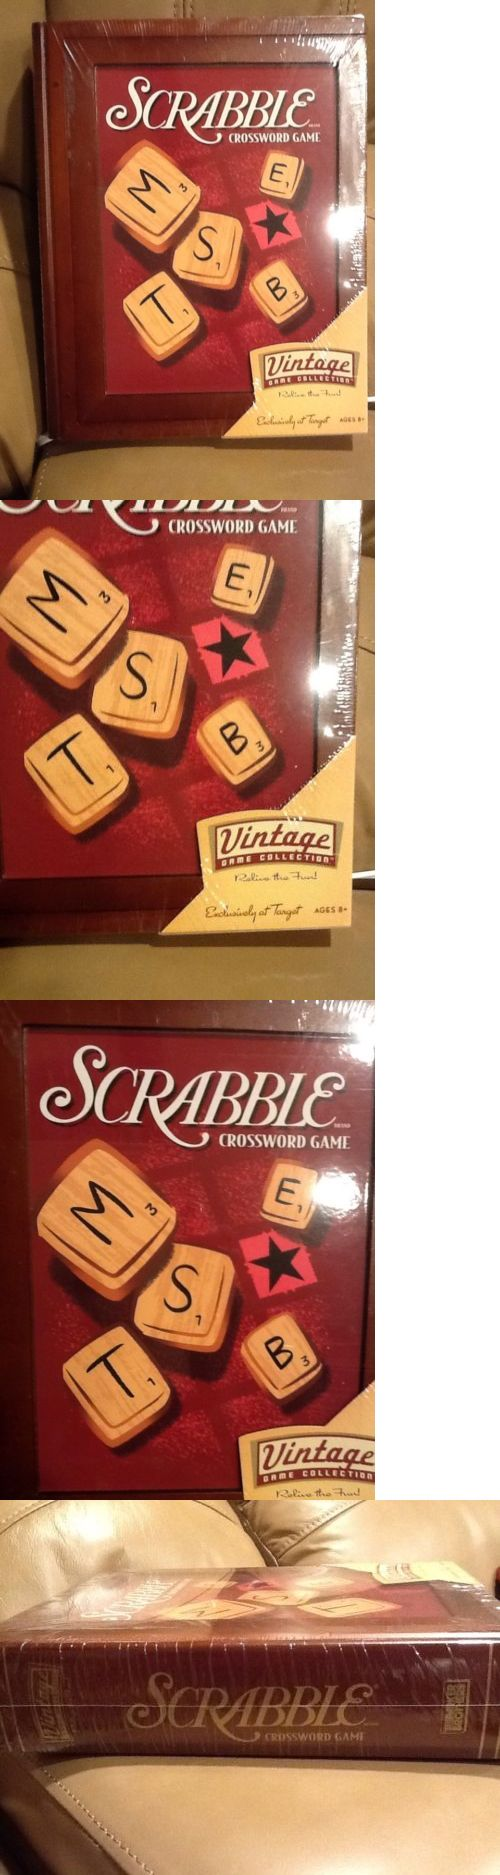 Vintage manufacture 19100 scrabble crossword game vintage game collection new and sealed parker brothers